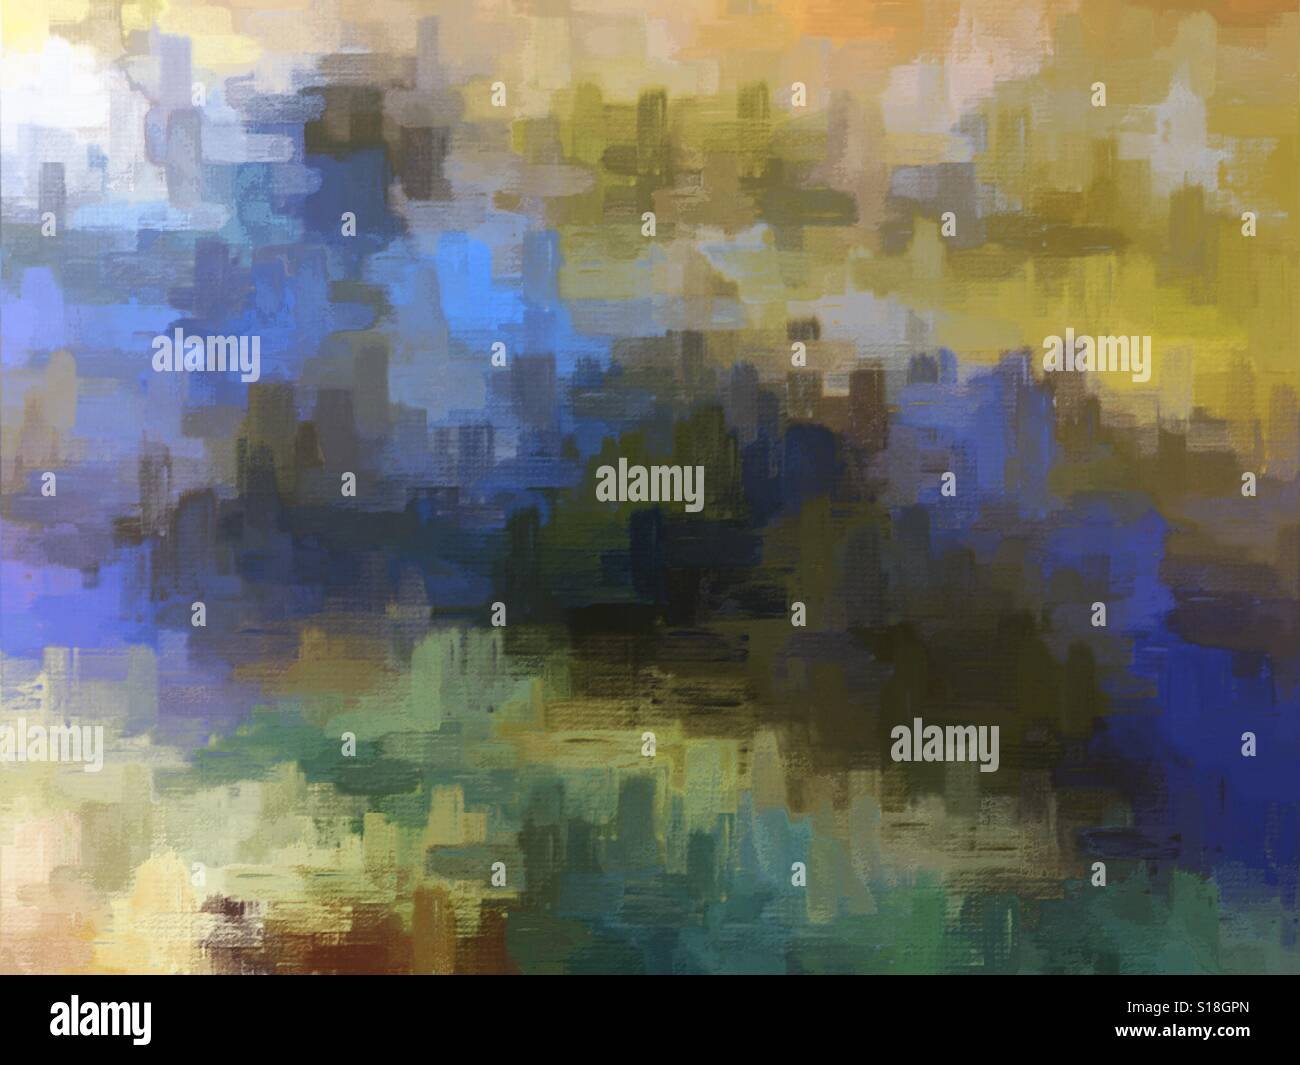 Abstract digital painting created from a photograph of reflections of trees on a lake. - Stock Image